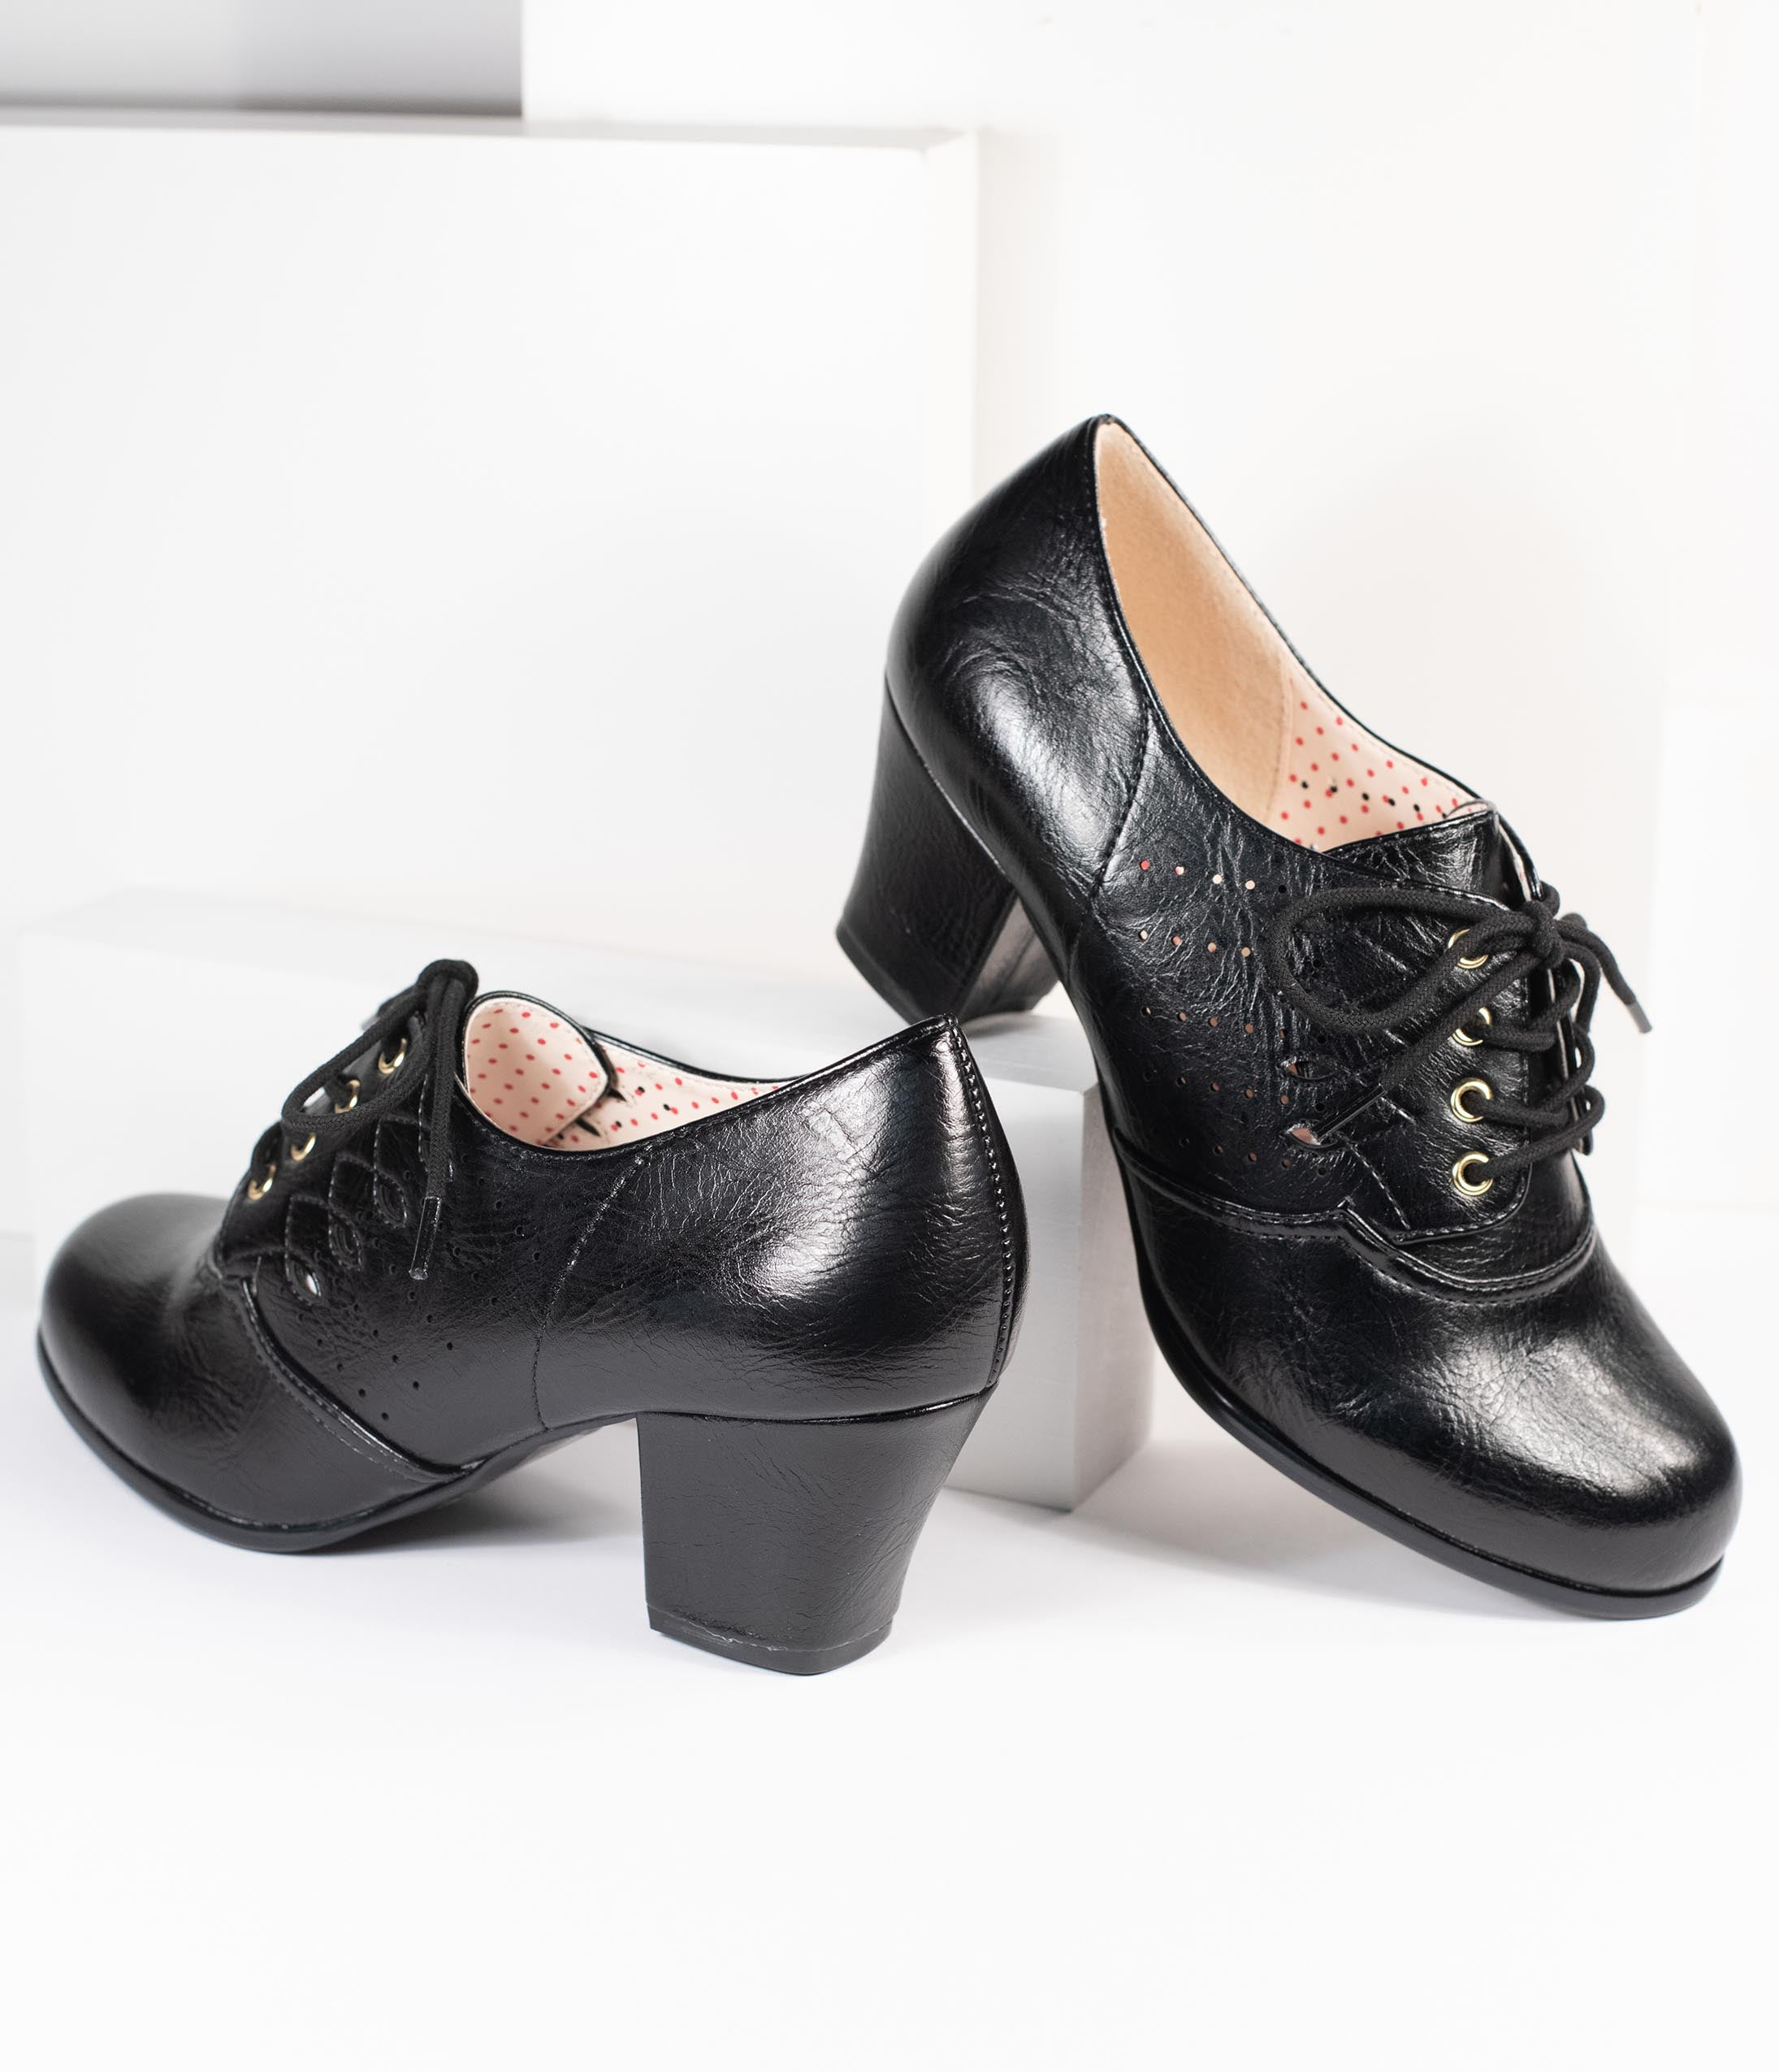 Vintage Heels, Retro Heels, Pumps, Shoes B.a.i.t. Black Leatherette Rosie Oxford Heel $74.00 AT vintagedancer.com